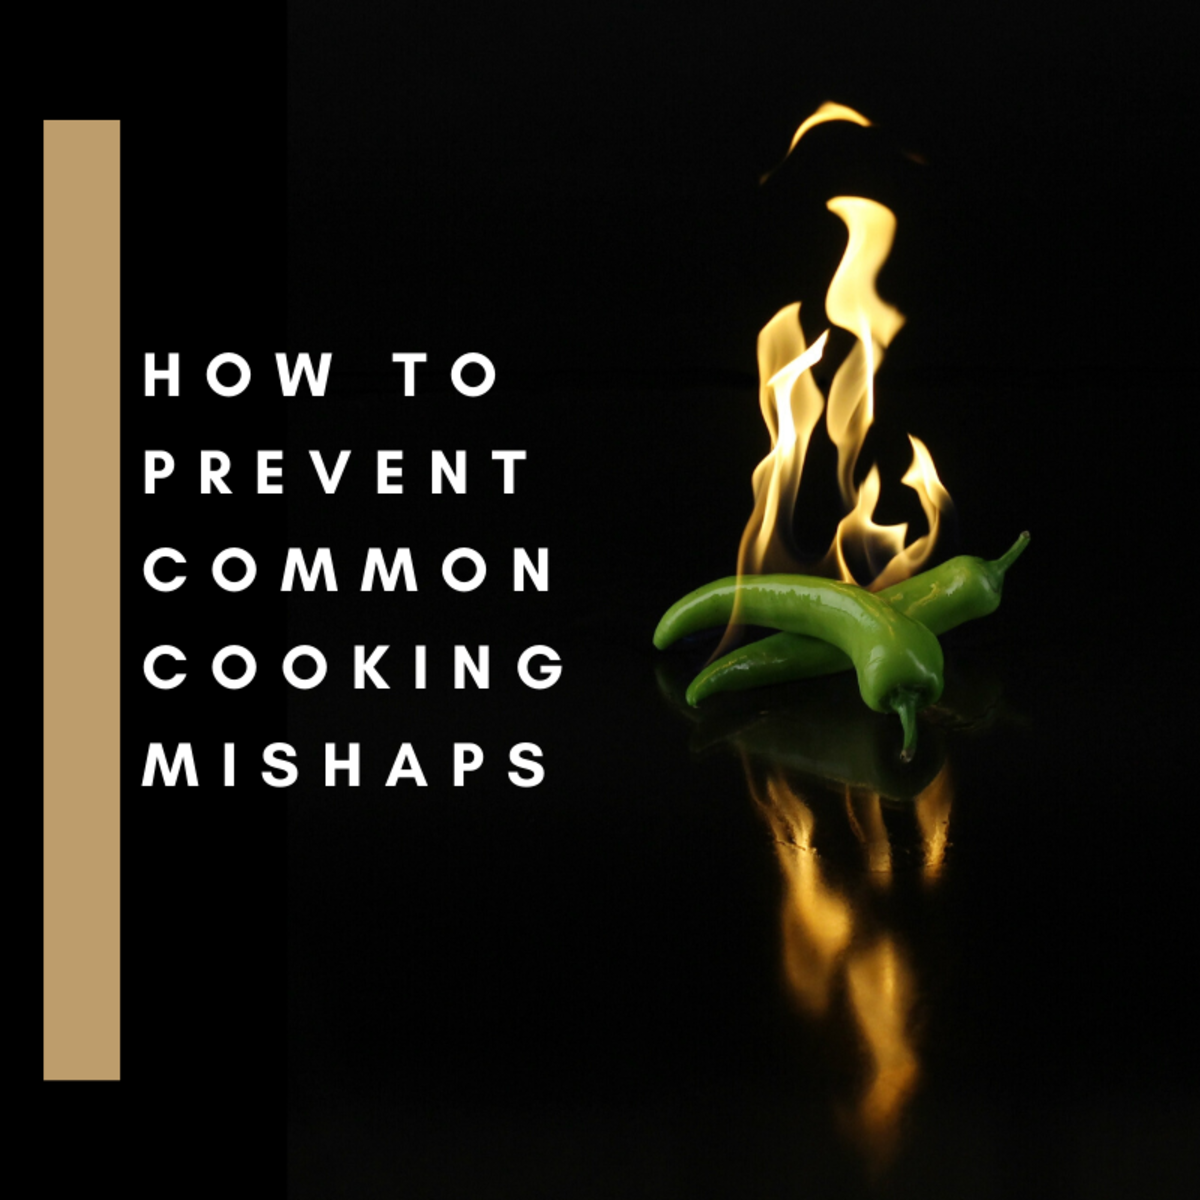 How to Prevent These 5 Common Cooking Mishaps